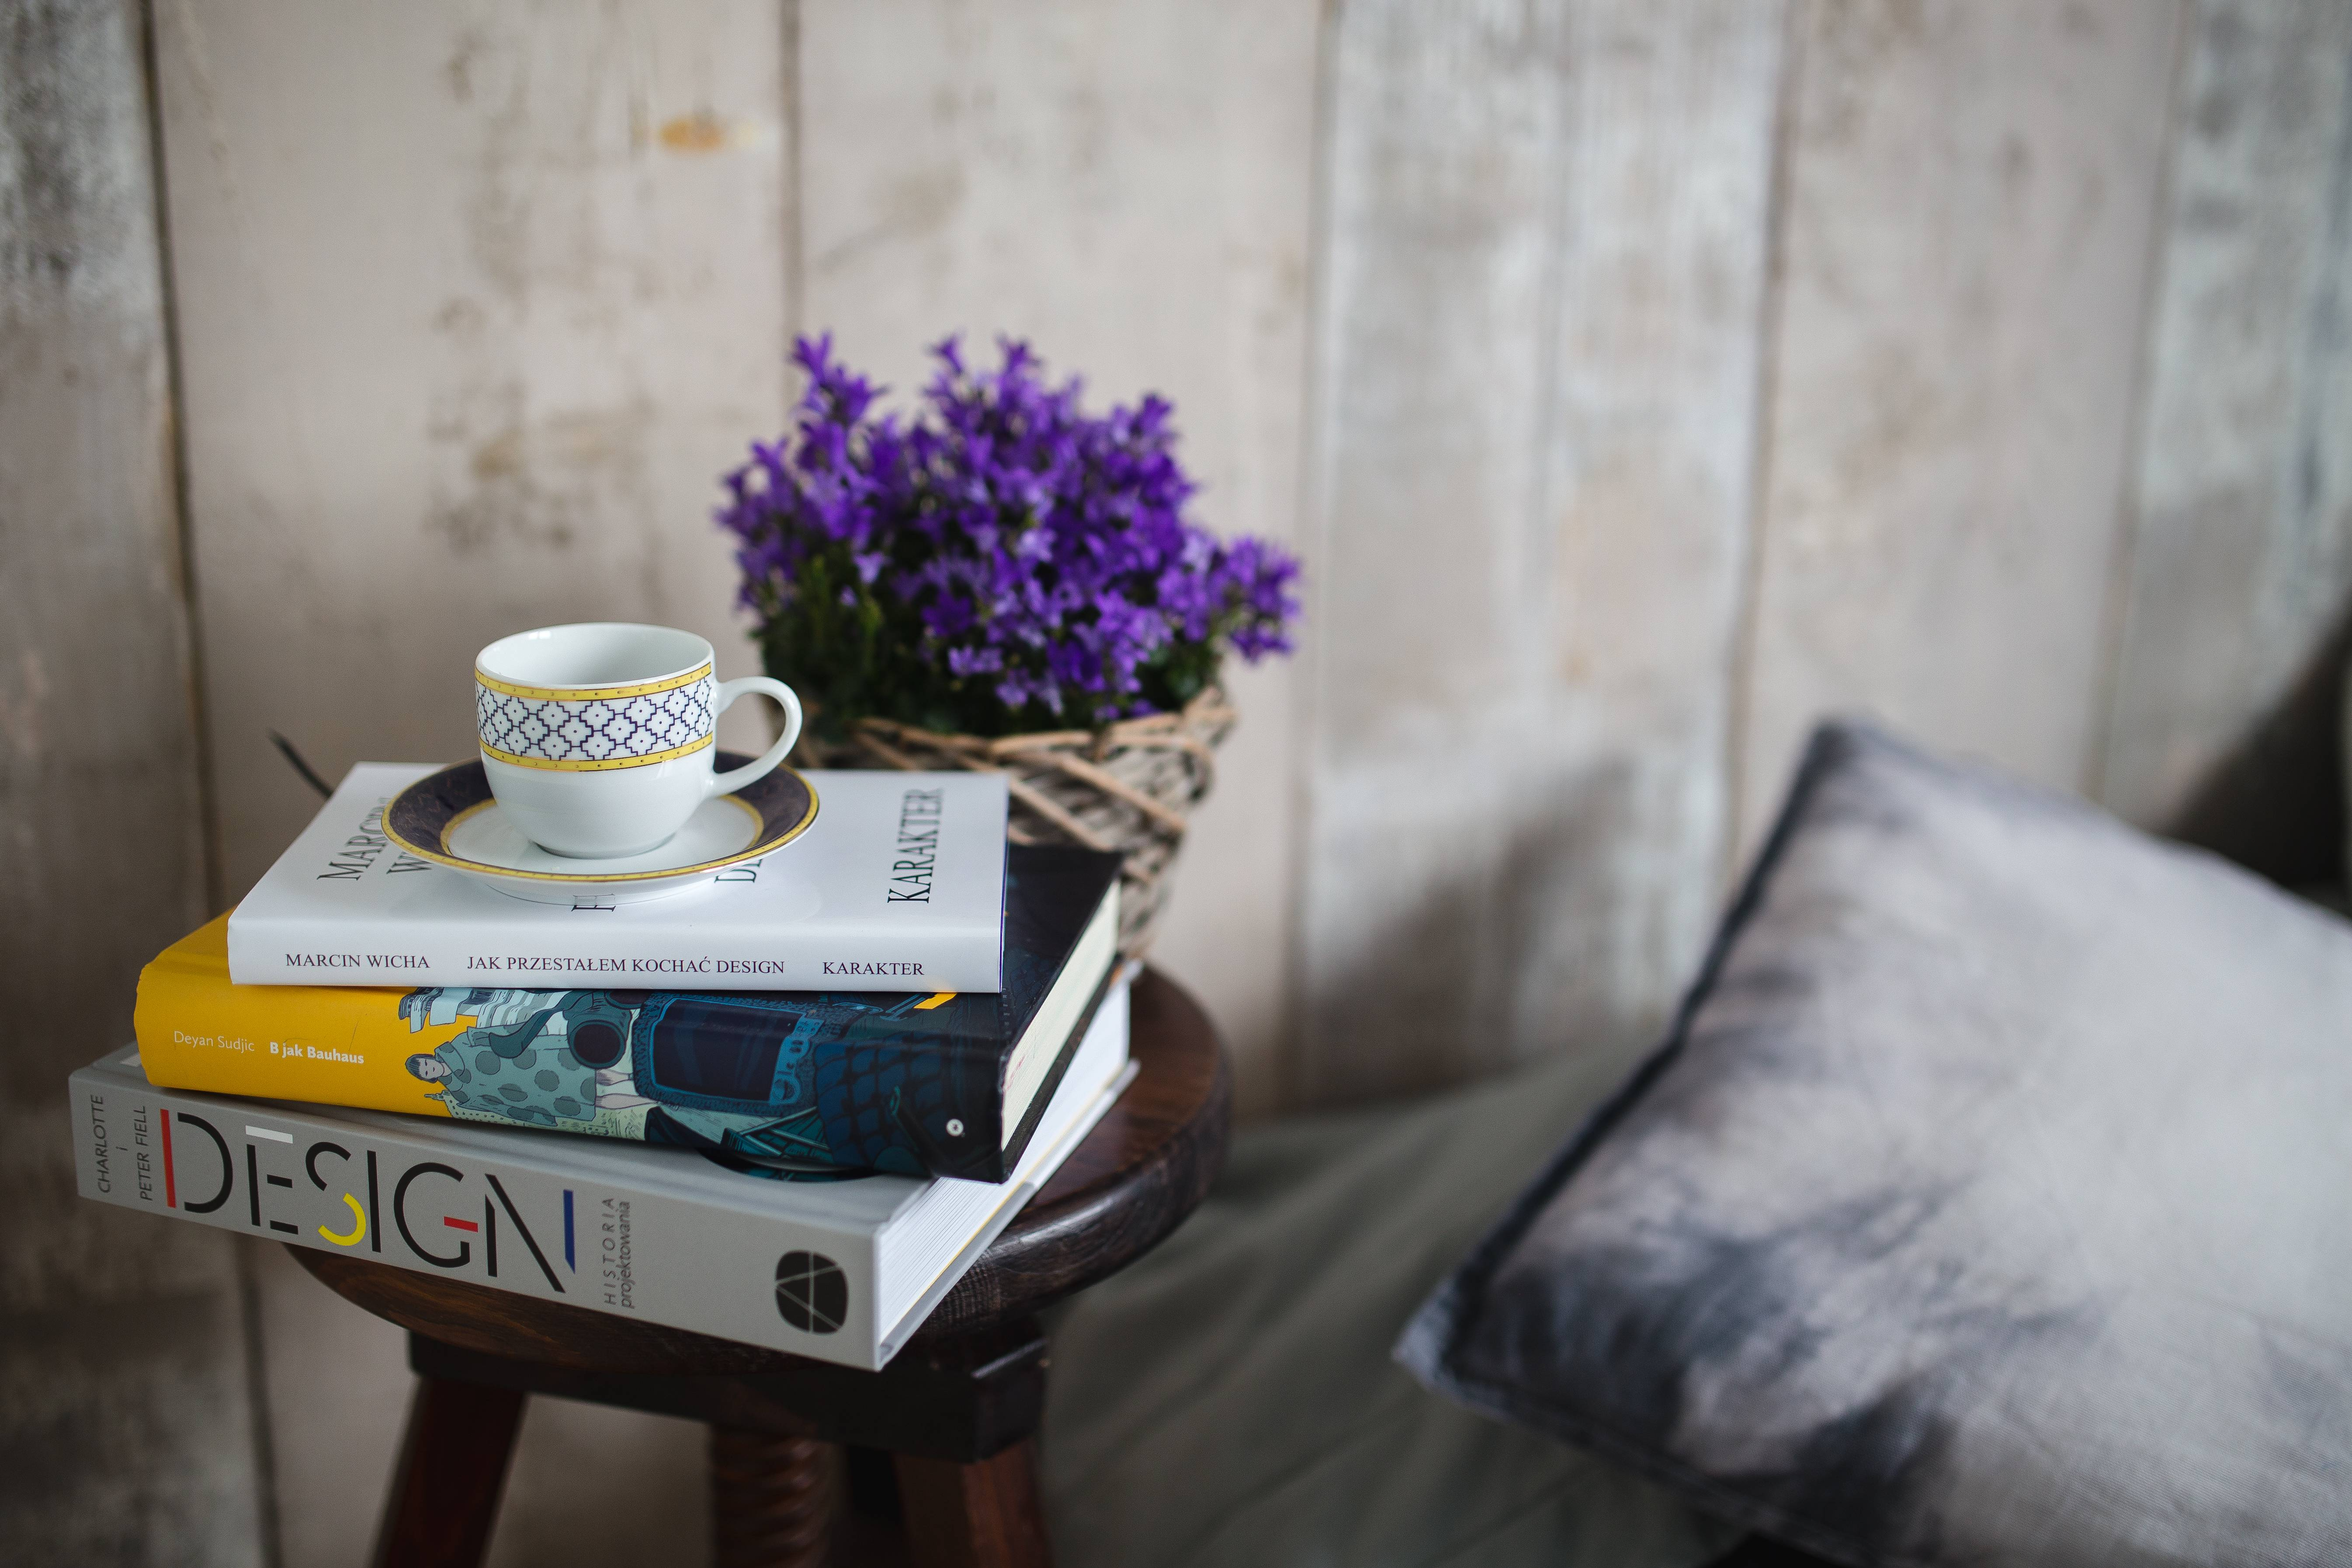 kaboompics_Books, purple flowers and a white cup on a wooden stool by the bed (1)